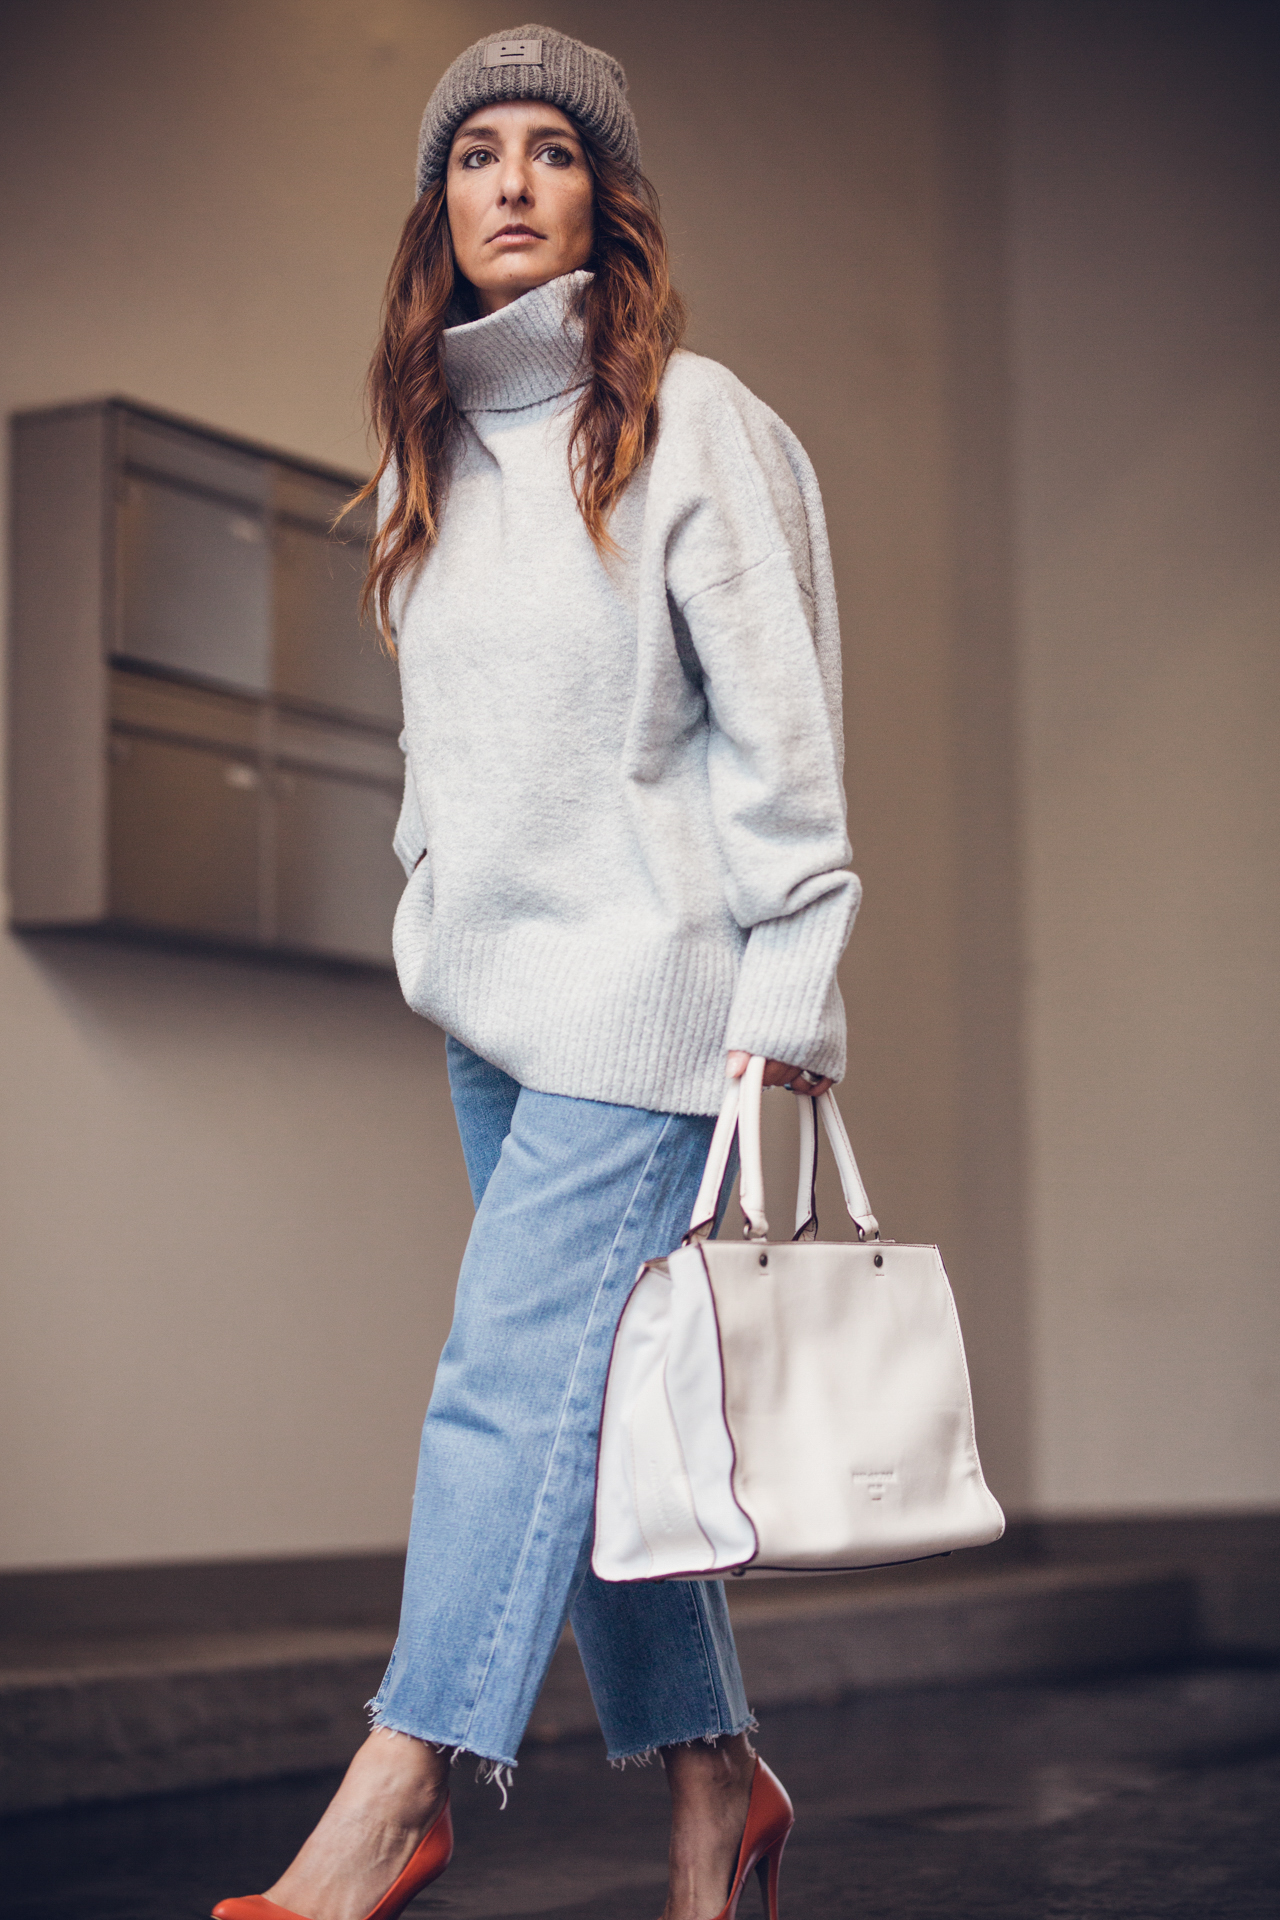 OUTFIT | Streetstyle White Bag, Mom Denim Jeans, Frey Knit & Acne Beanie